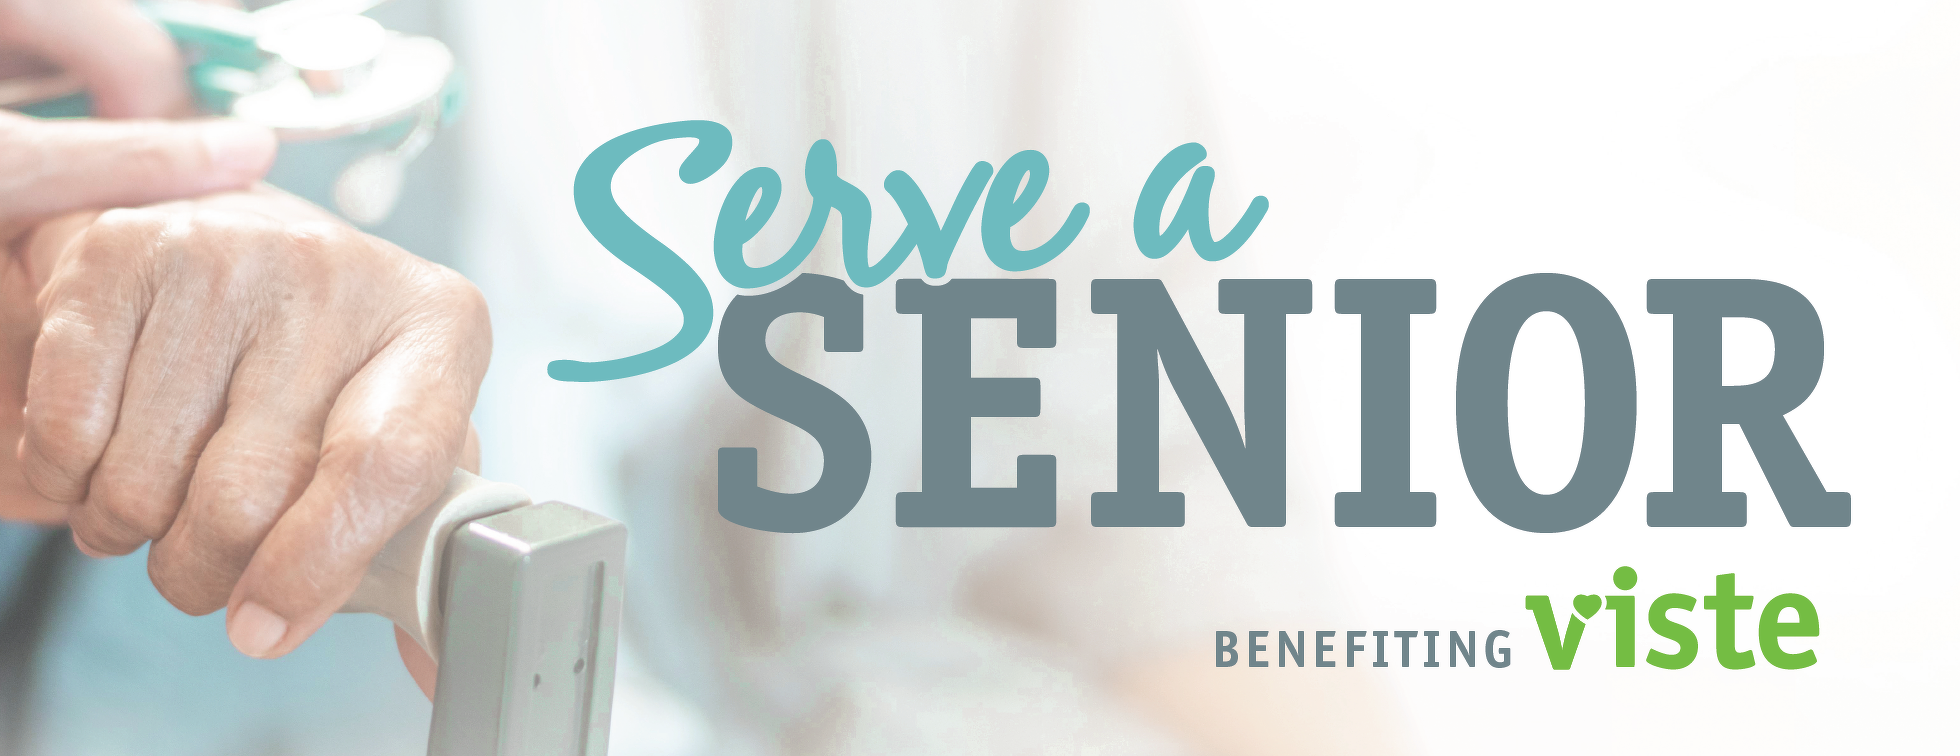 4th Annual Serve a Senior